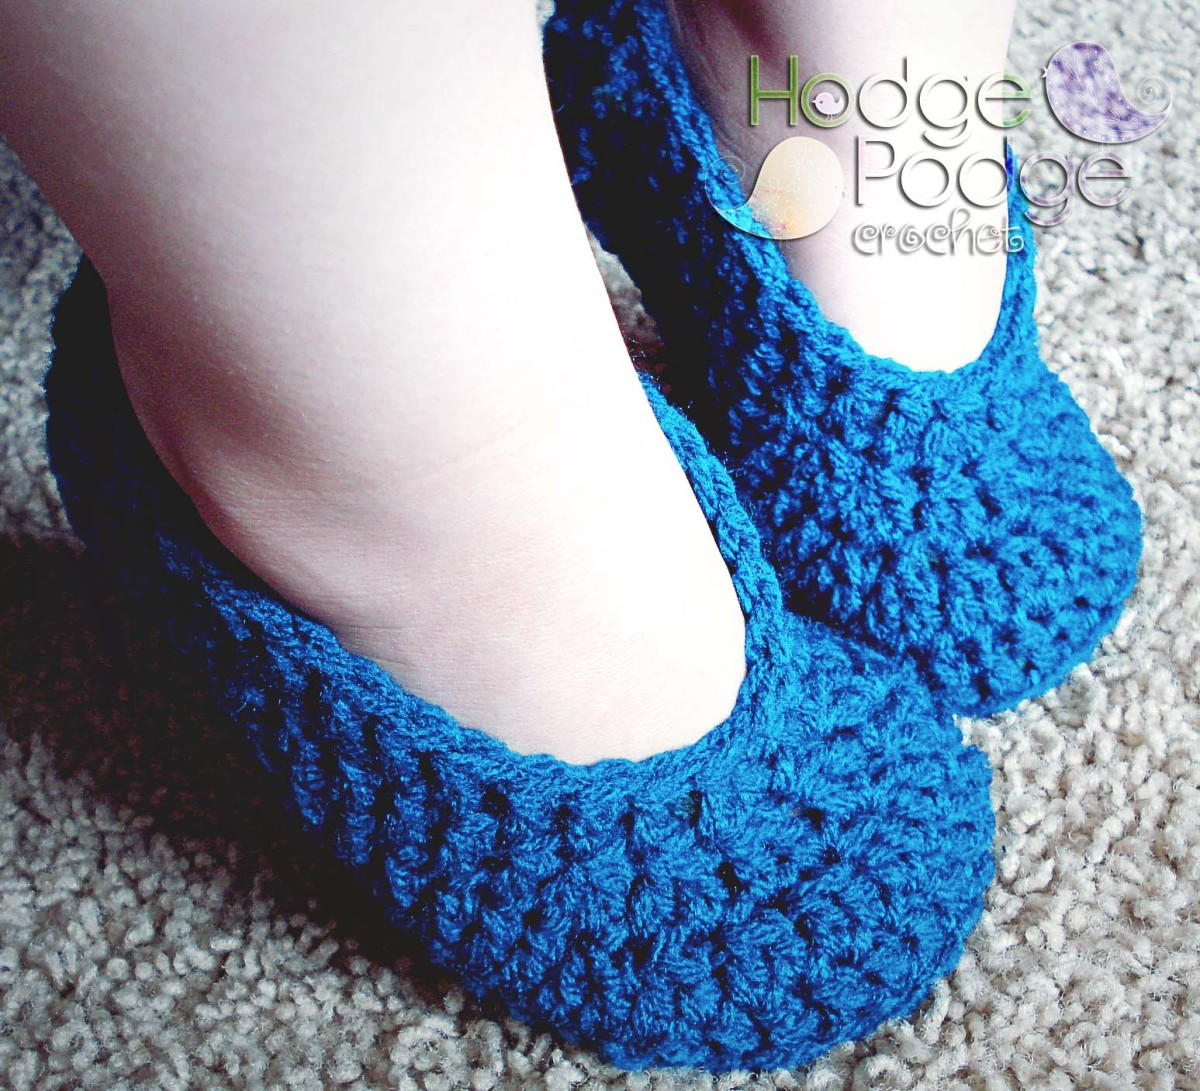 Free Crochet Patterns For Childrens Slipper Boots : Simple Toddler Slippers HodgePodge Crochet